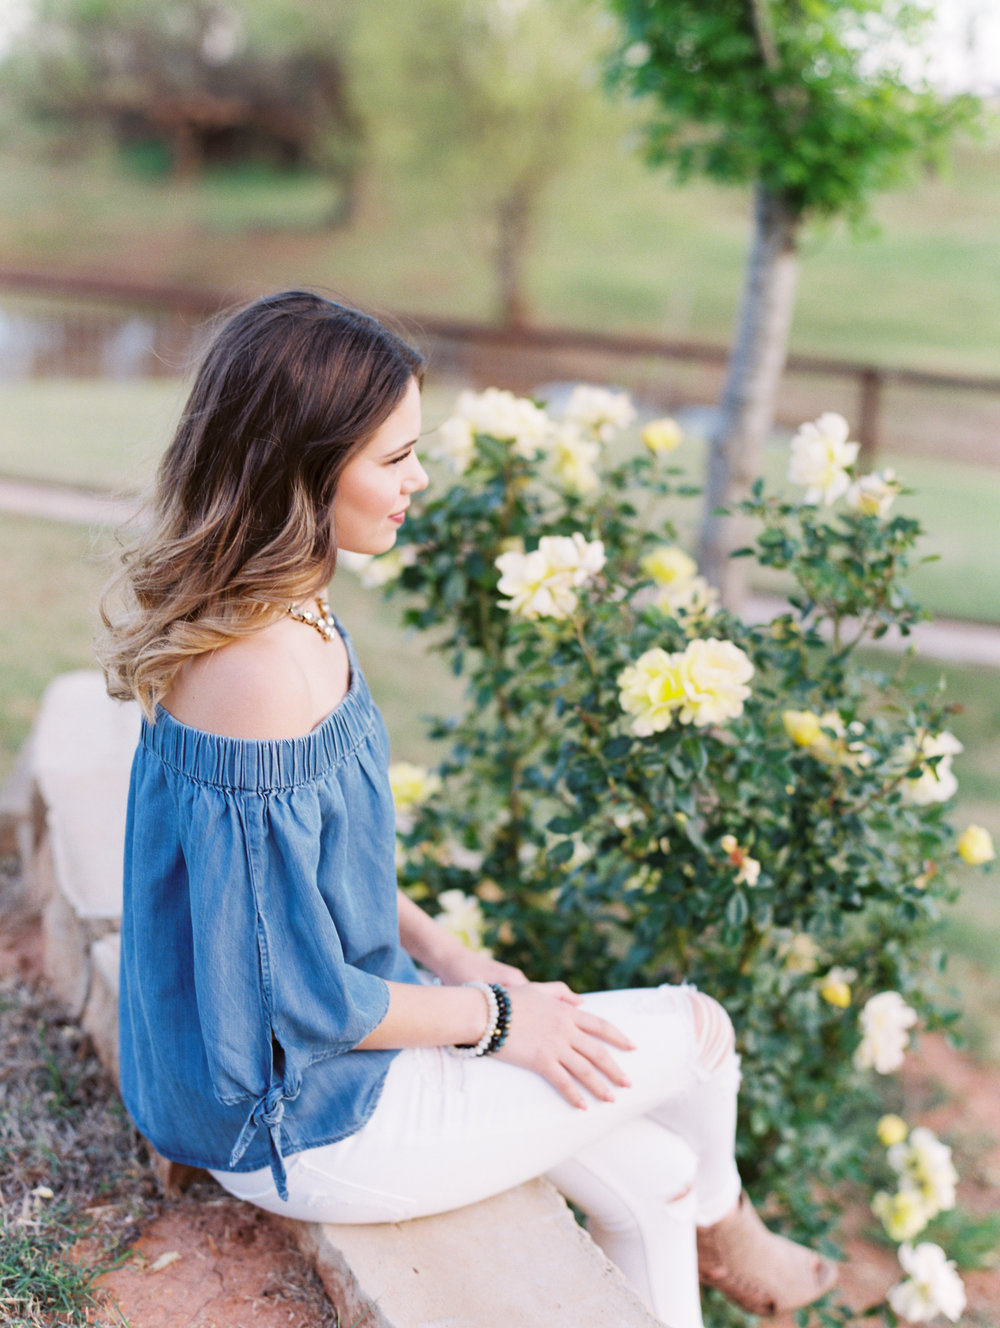 Mallory, Class of 2017 | Gorgeous Senior Session, Stylish Senior Photos | Texas Senior Photographer, Ideas For Senior Girl Session | britnidean.com